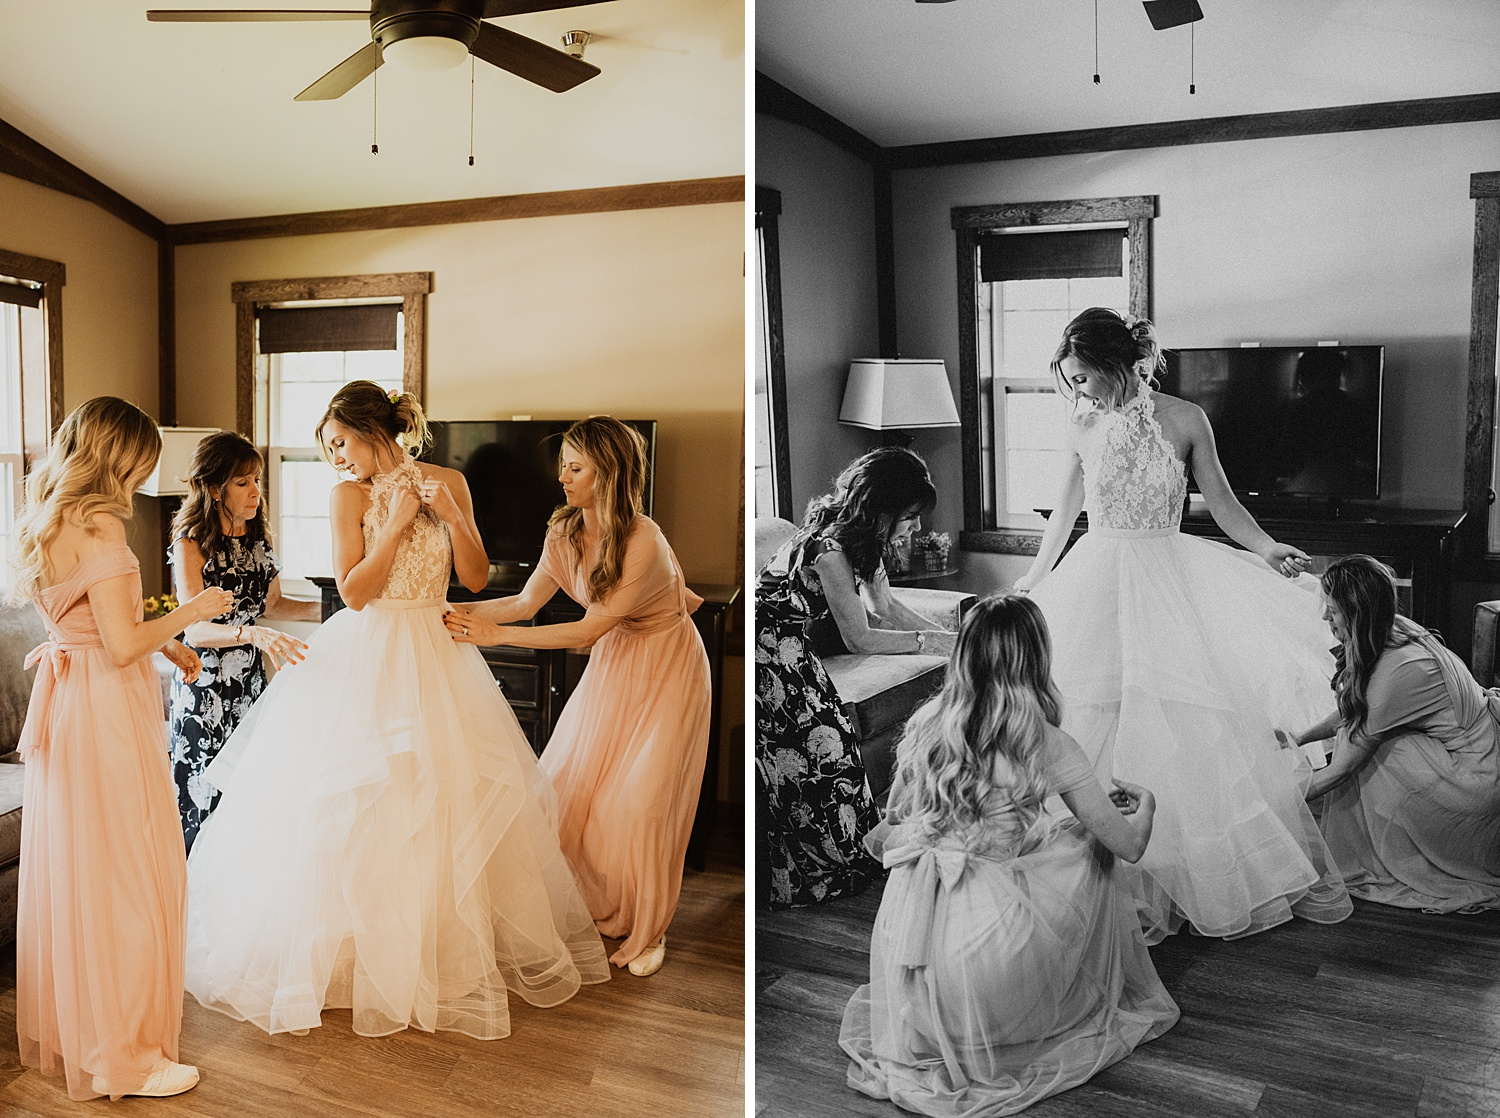 Bride Getting Ready | Putting On the Dress | Tulle Halter Top Ballgown | Cassie Madden Photography